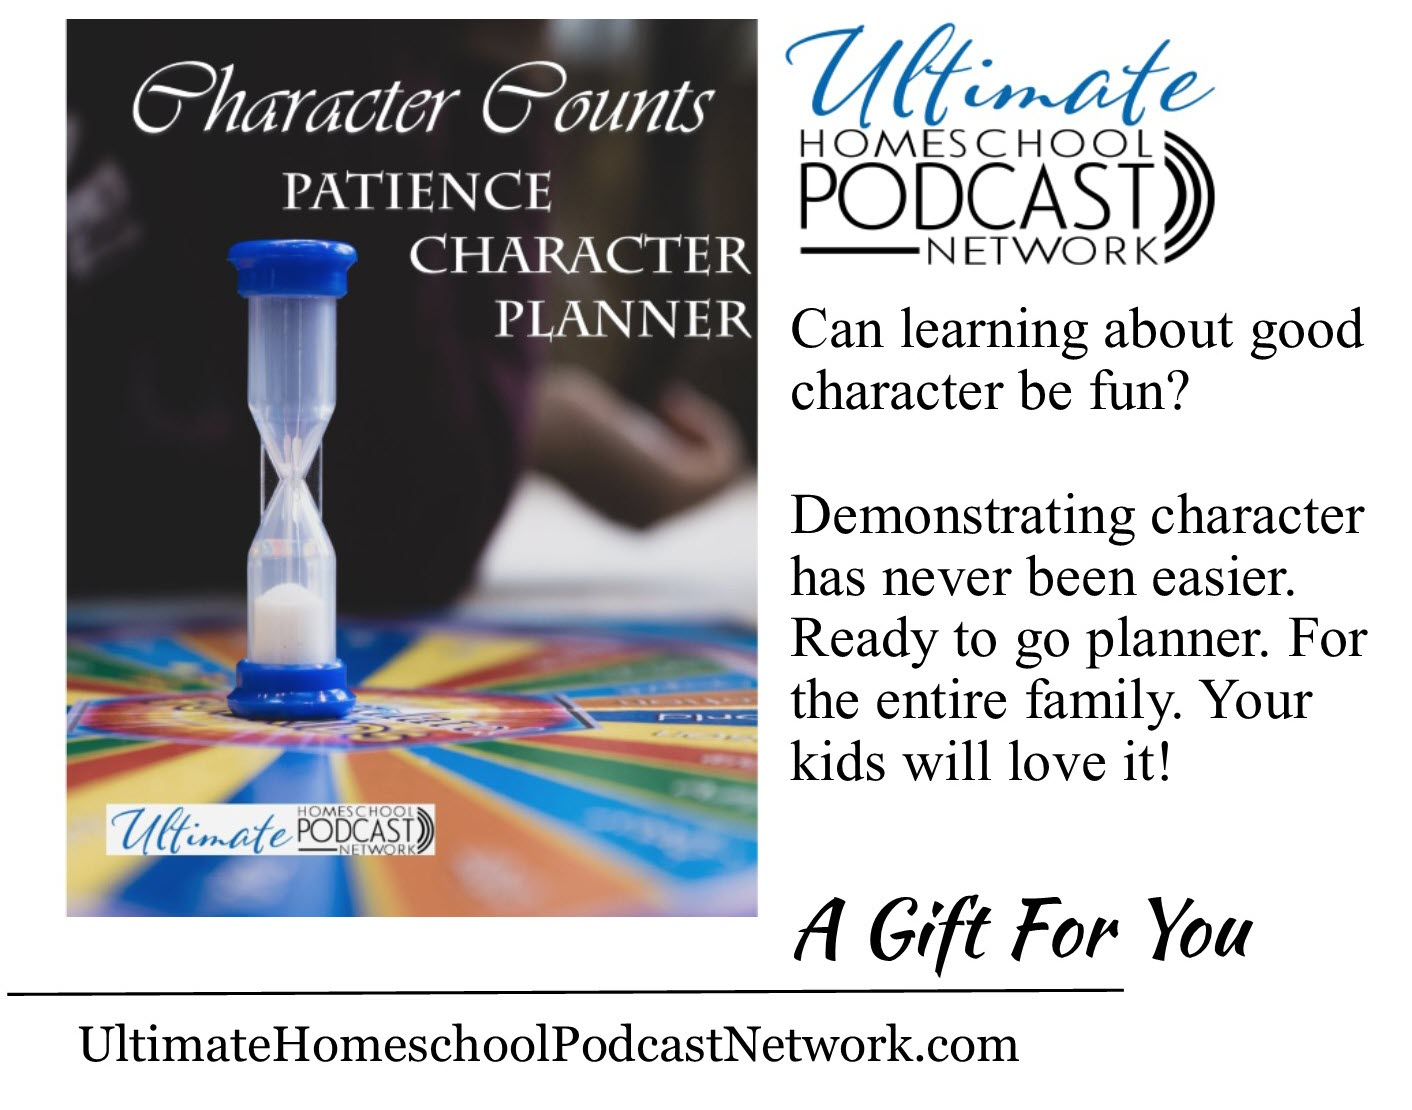 Character Counts Patience Character Planner | #characterplanner #characterkids #teachingcharacter #UHPN #ultimatehomeschoolpodcastnetwork